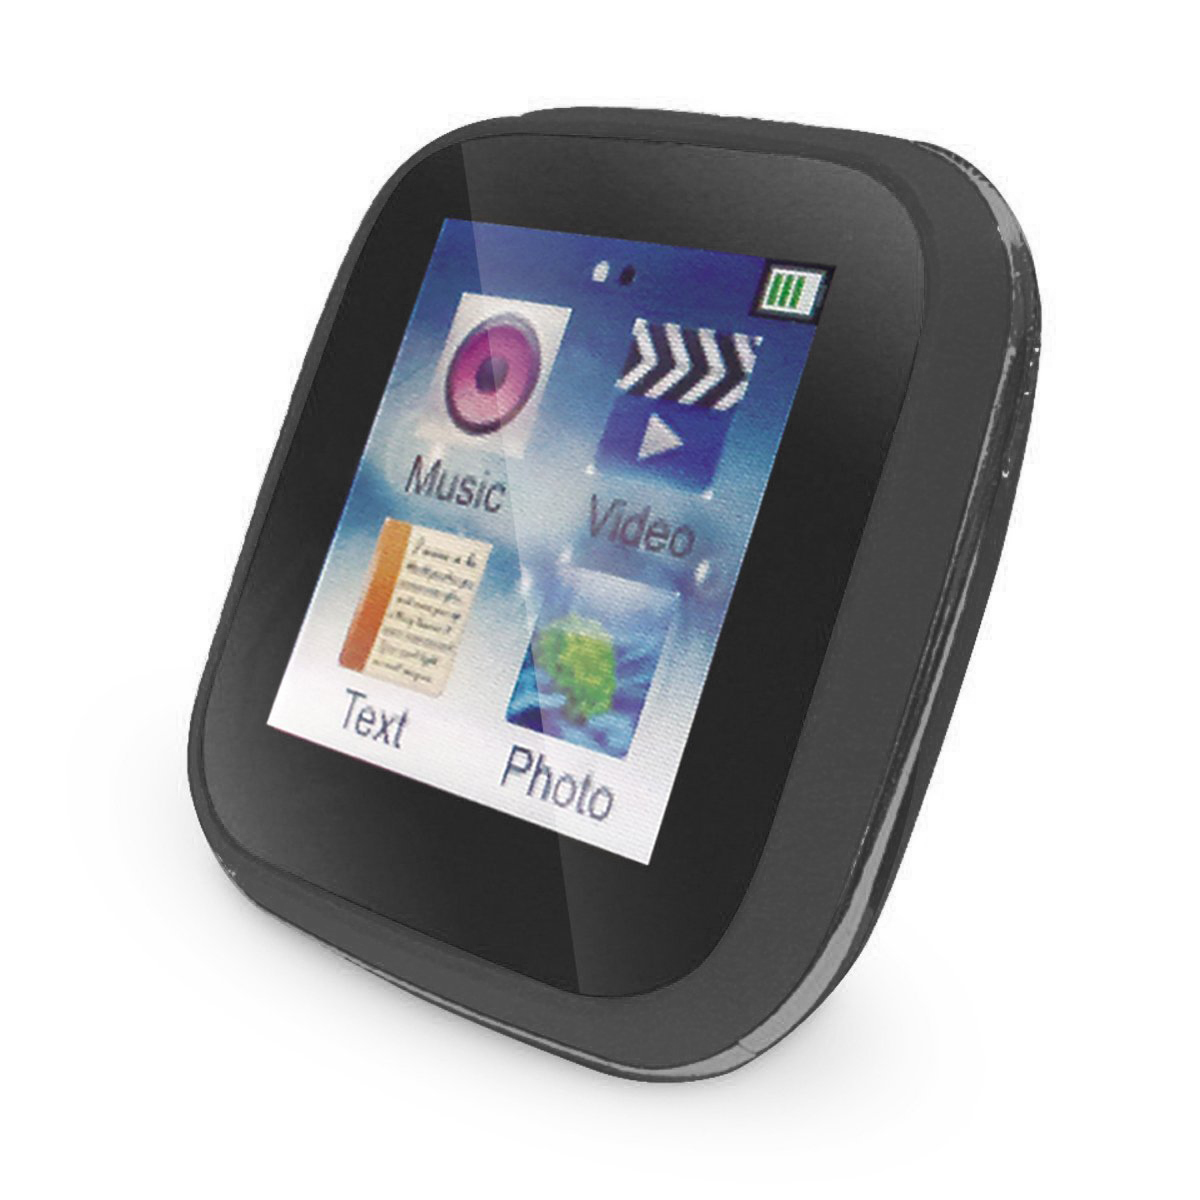 HOTT 8GB MP3 Player Touchscreen Digital Music and Video with FM Radio - A22